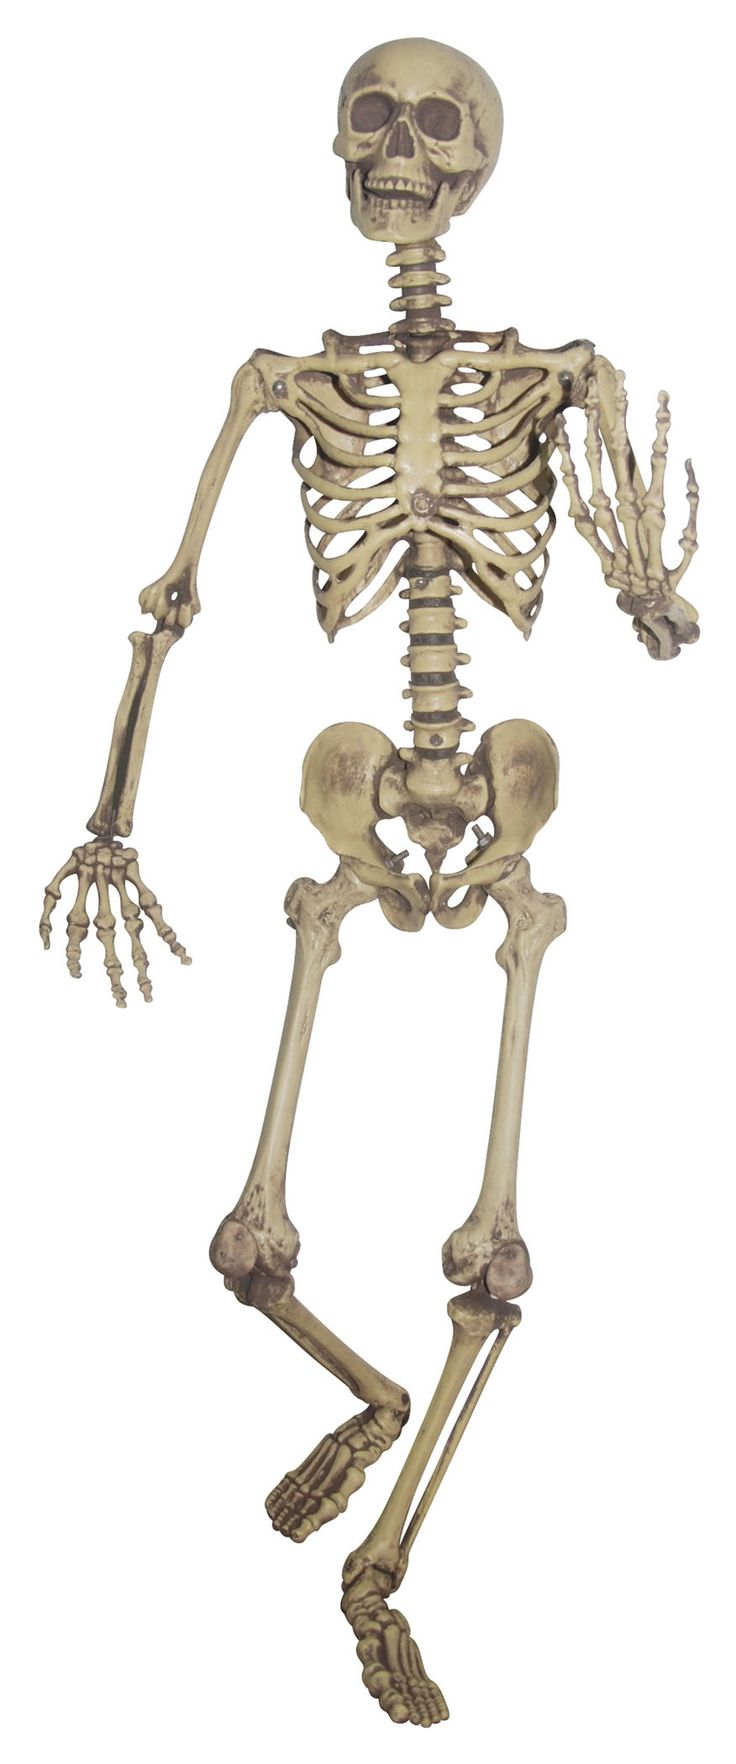 Got this Real Cheap at This Cool Site DasCheap.com! Take a look real quick please Buy Cheap Lifesize Posable Skeleton - Realistic Skeleton Prop